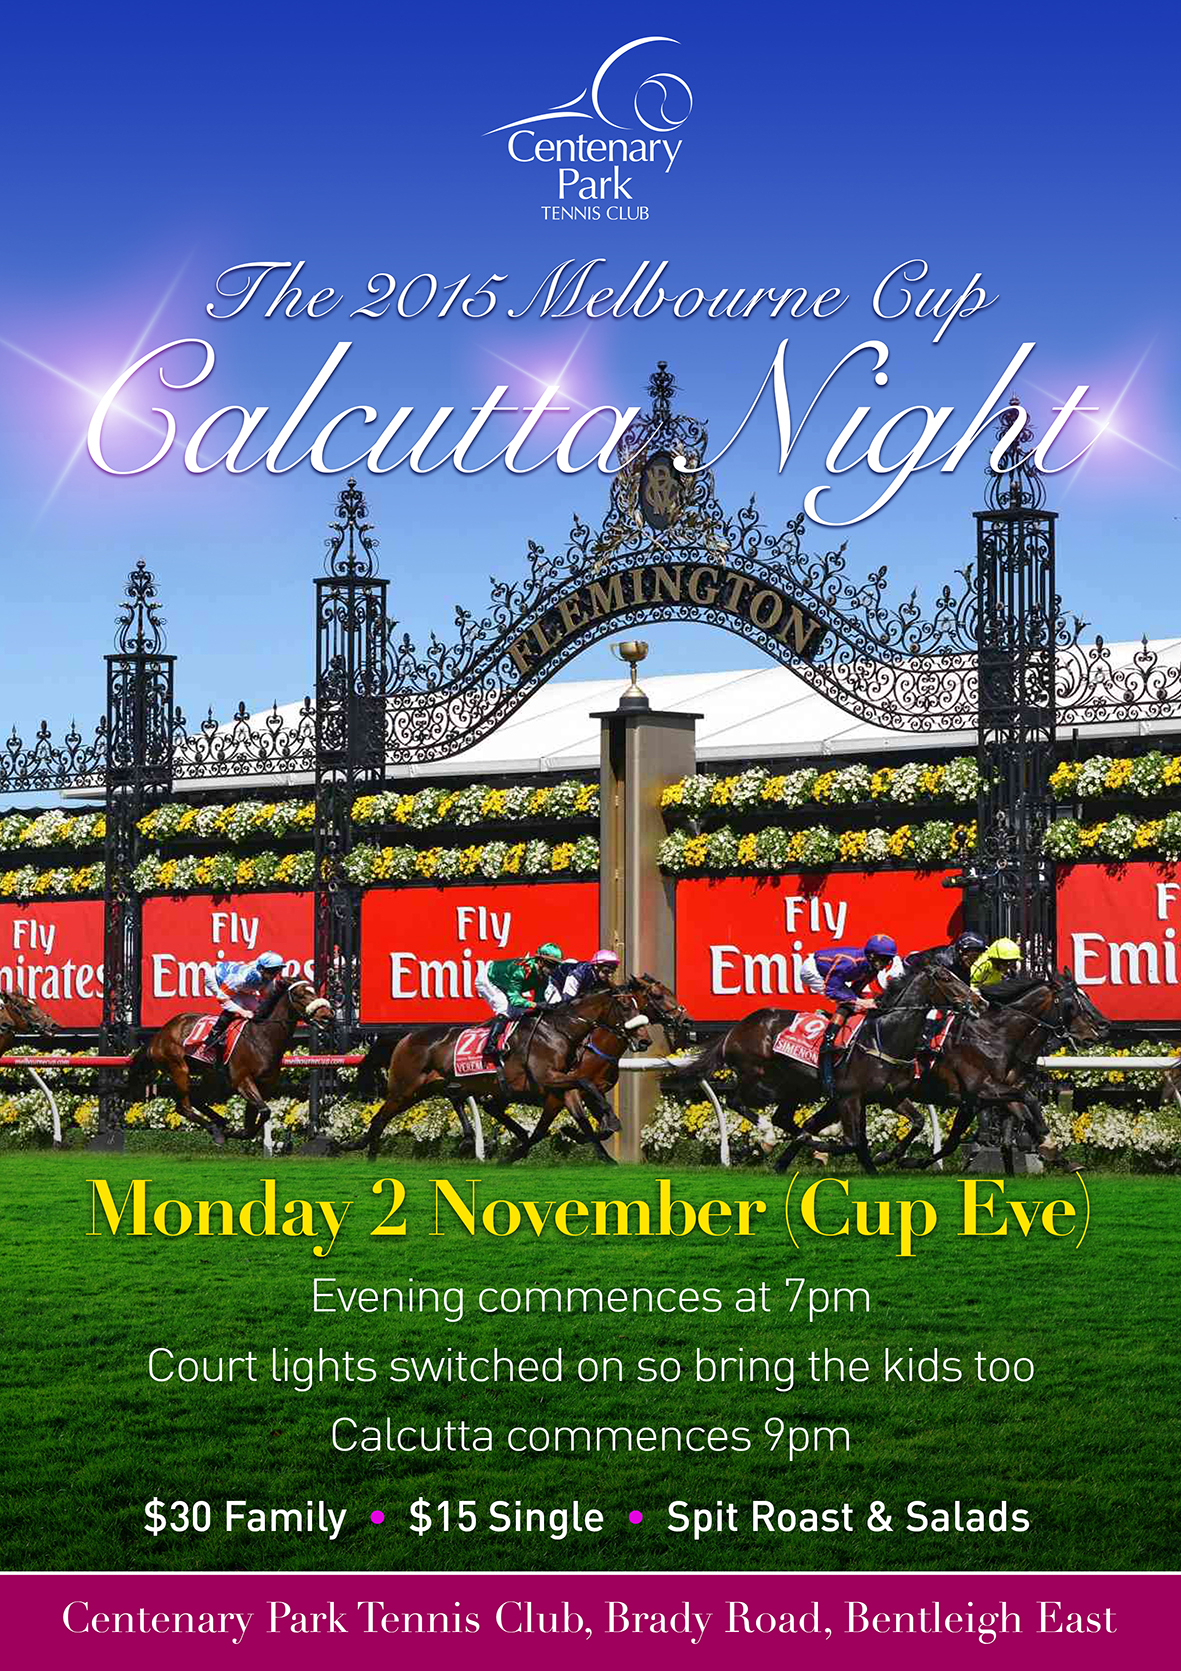 Melbourne Cup Calcutta Spreadsheet Within Centenary Park Tennis Club Melbourne Cup Calcutta Monday 2 November